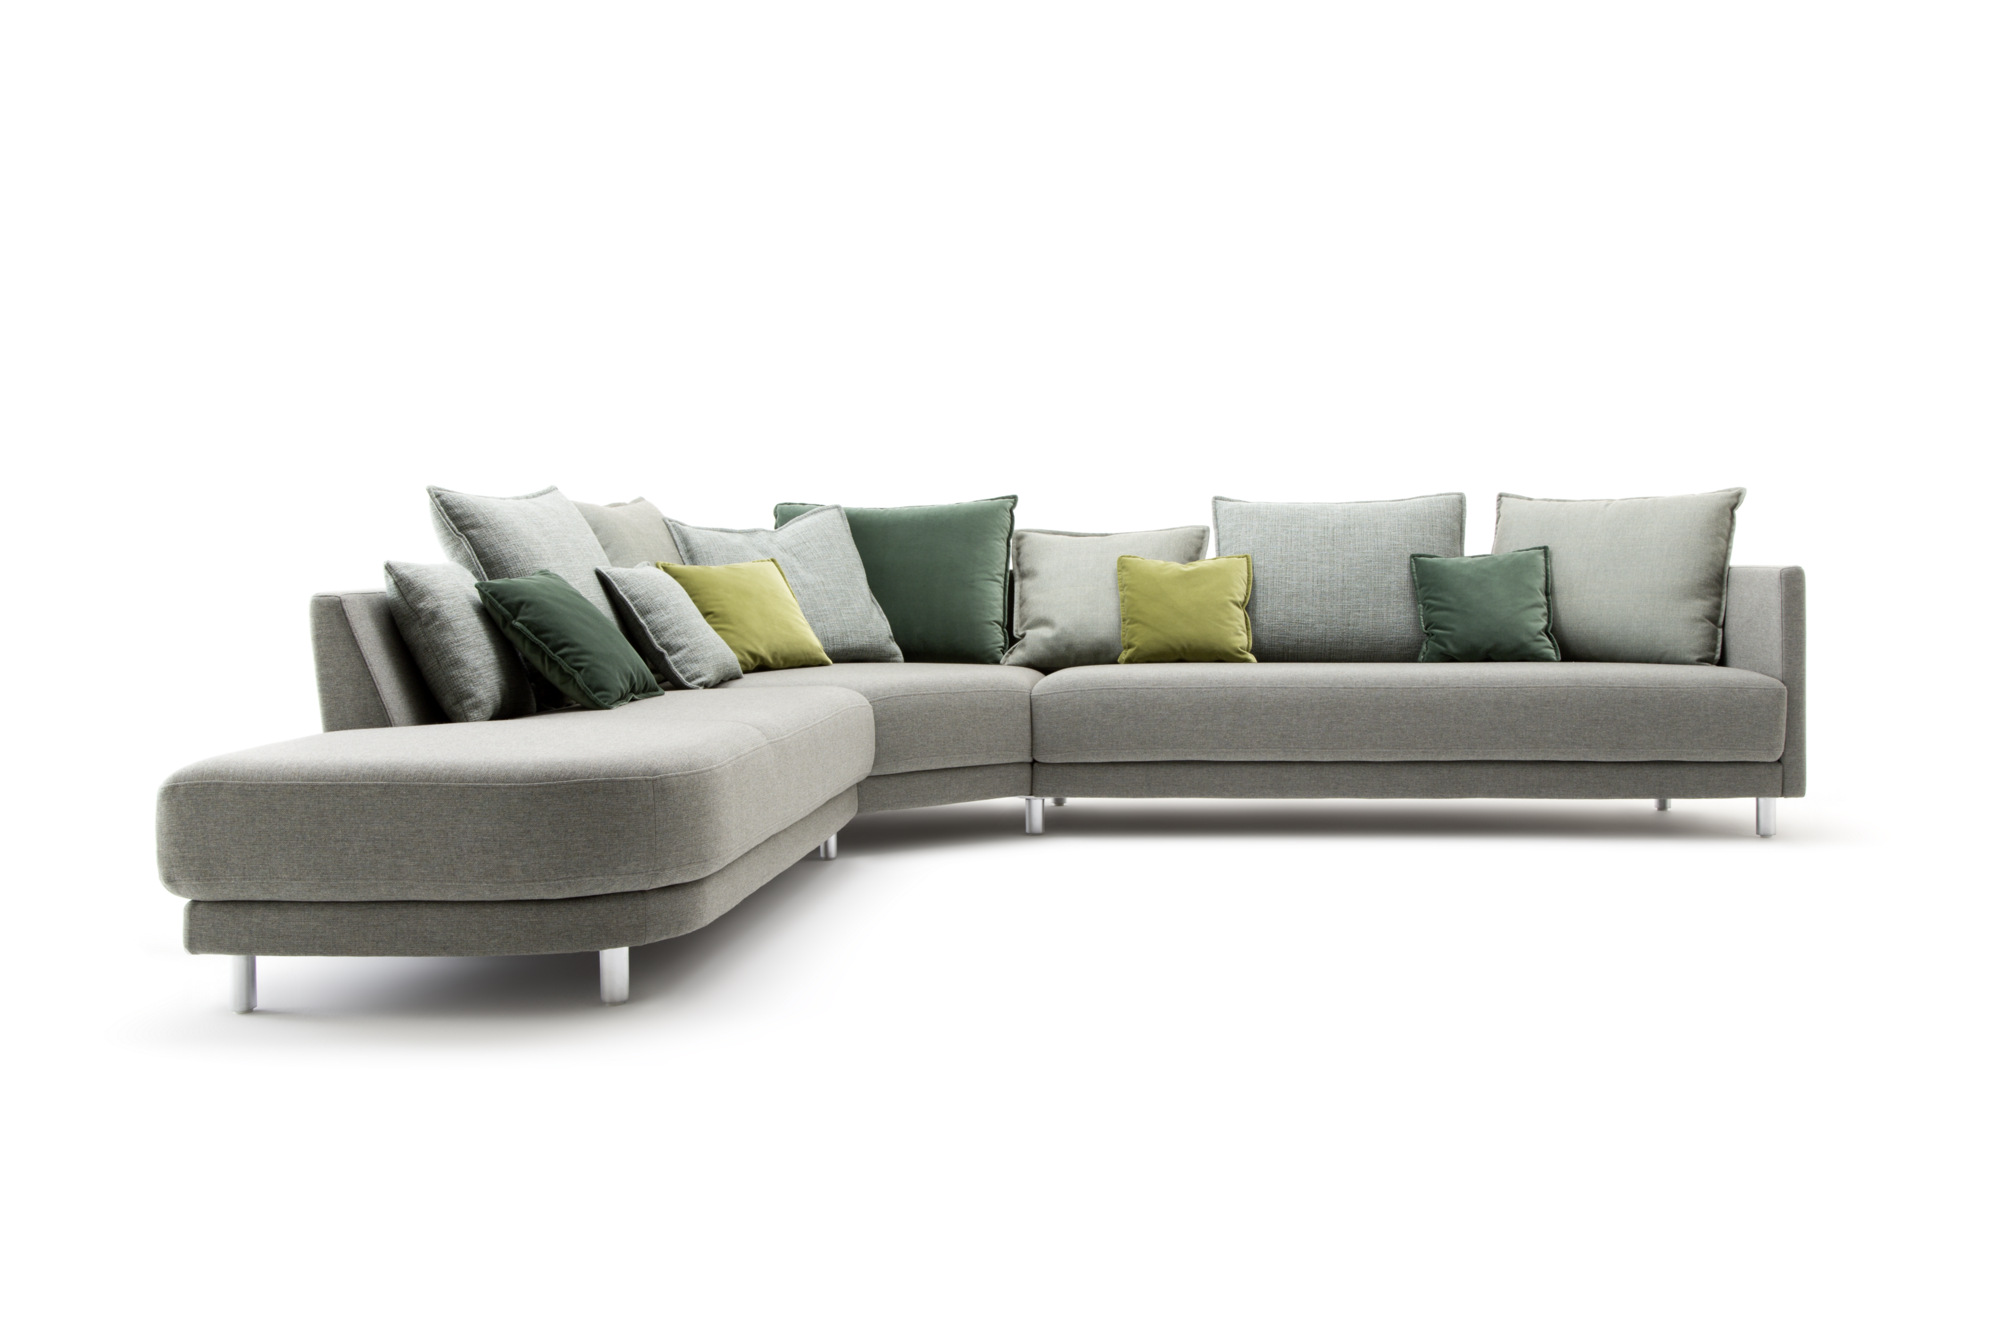 Benz Corner Sofa Onda Corner Sofa Onda Collection By Rolf Benz Design